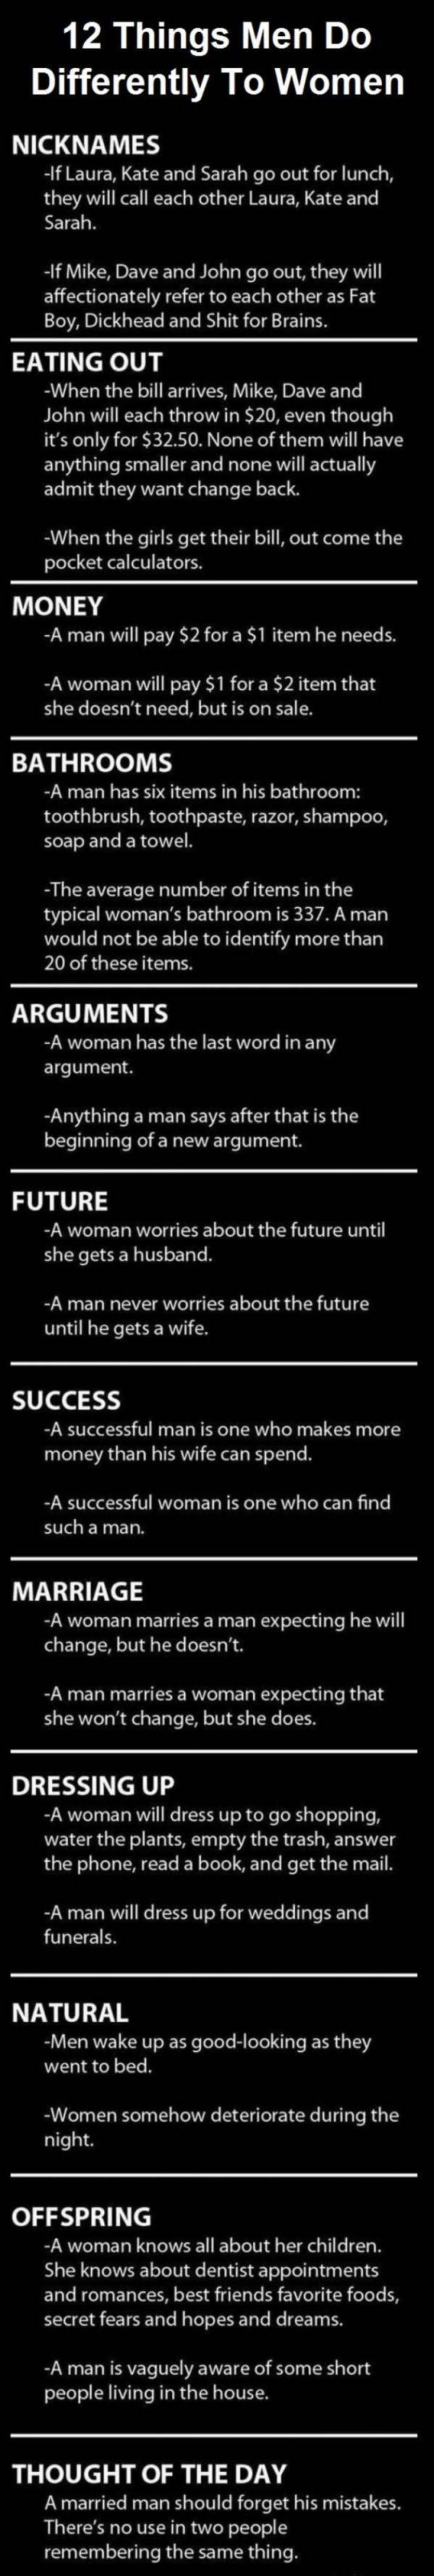 Men vs Women - 12 Differences